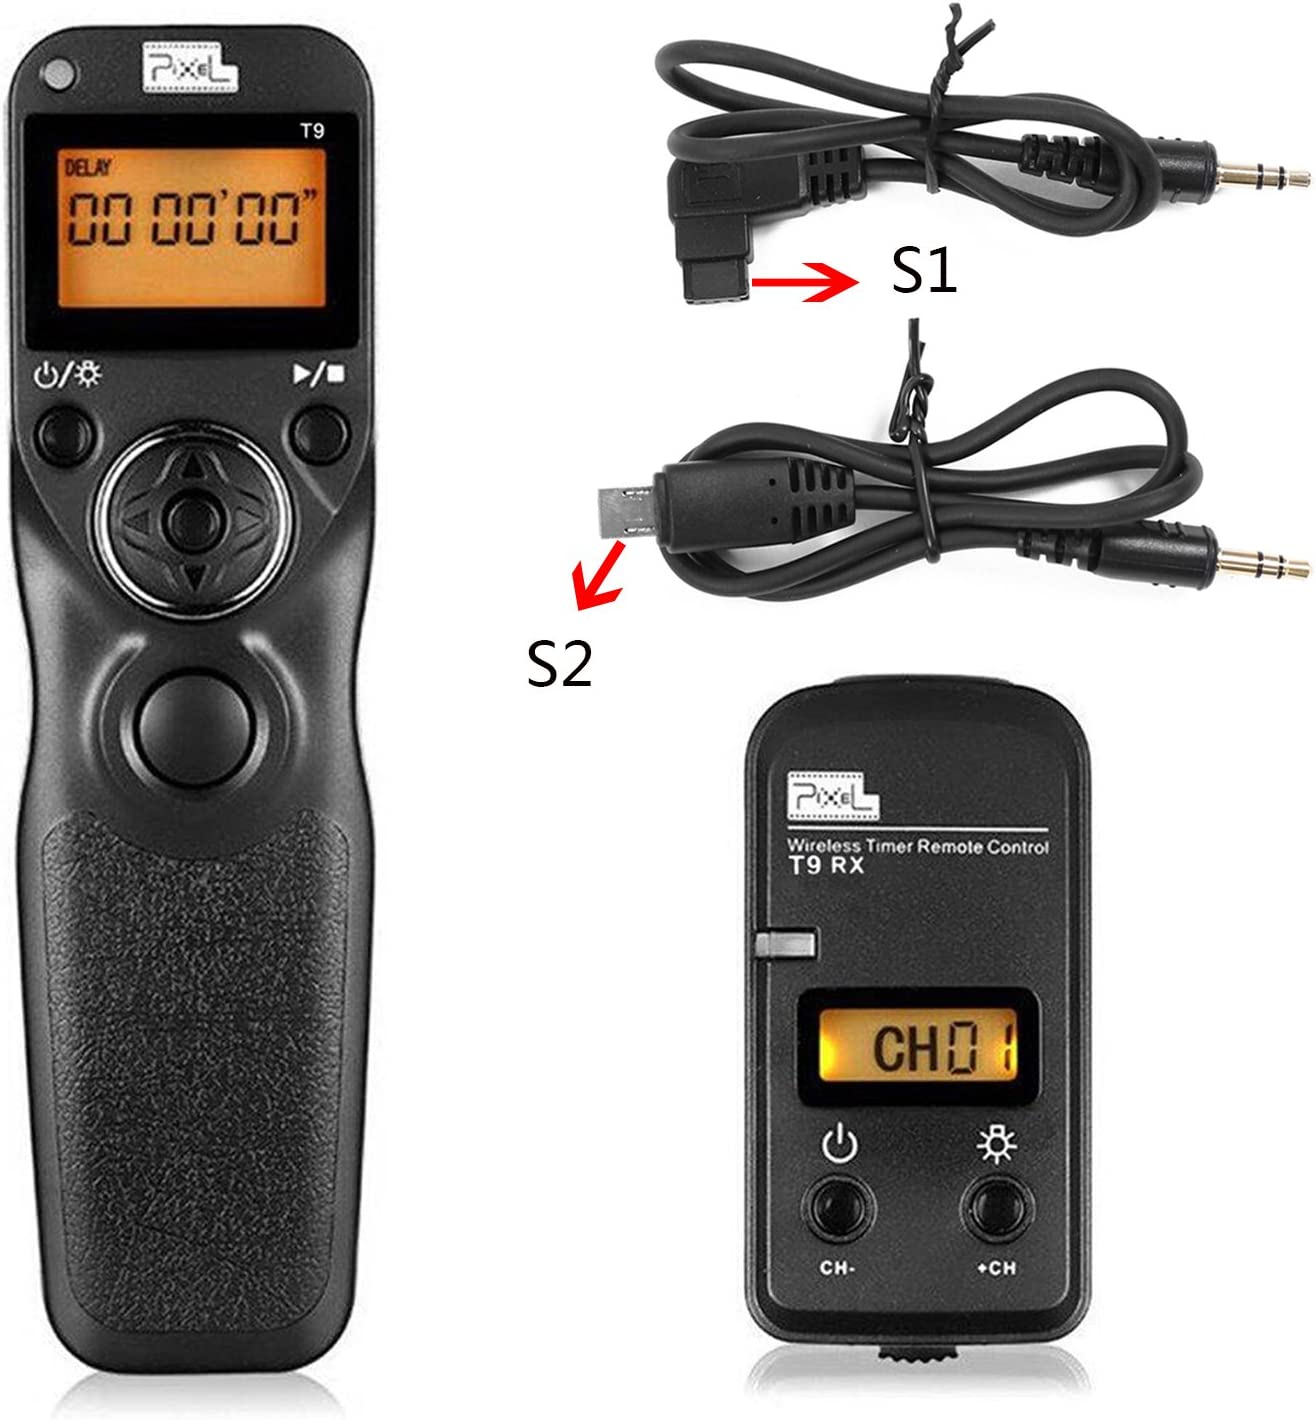 Pixel T9-S1/S2 LCD Wired/Wireless Shutter Release Remote with 2 Connecting Cables Timer Remote Control for Sony A560/A580/A390/A450/A500/A550/A850/A900/A350/A200/A58(S1/S2)